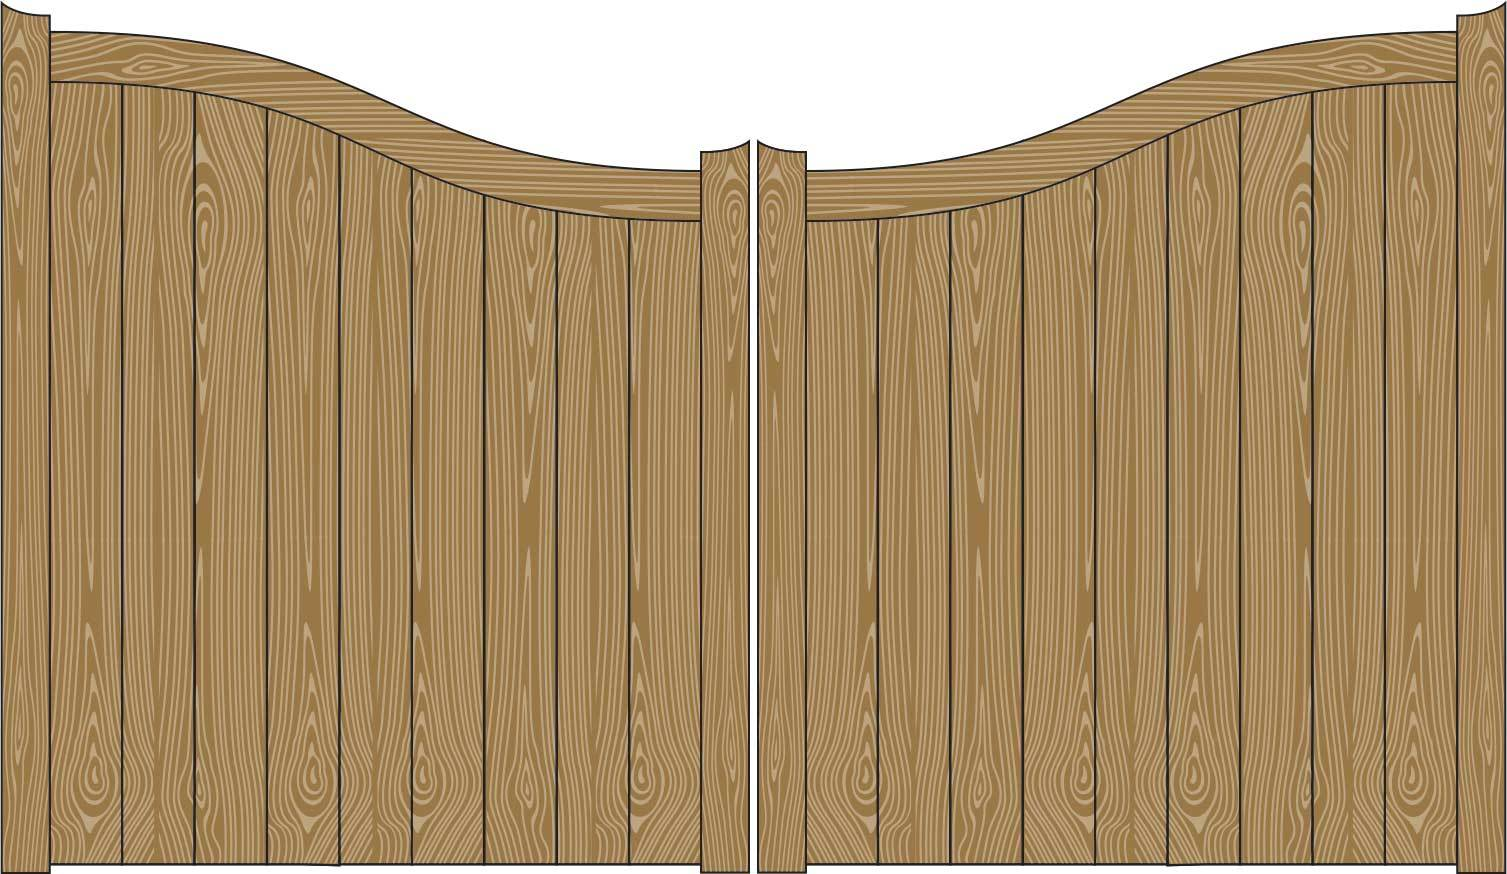 Oxley Gates Wooden Lincon illustration